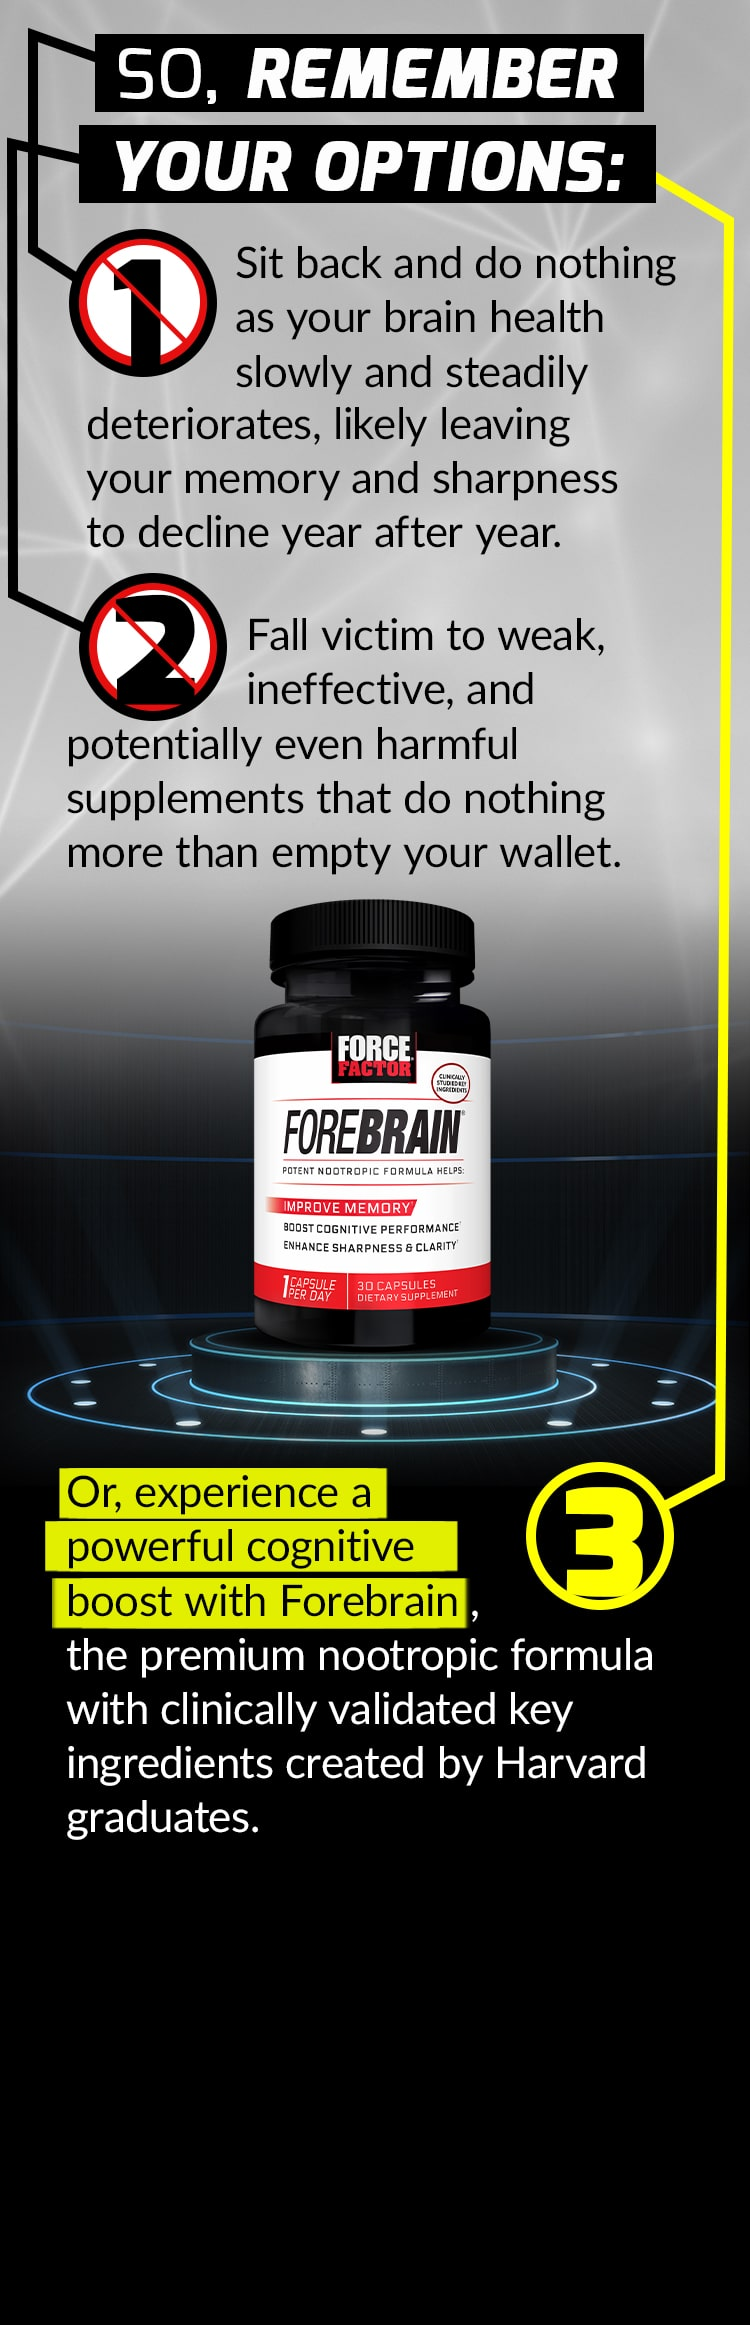 SO, REMEMBER YOUR OPTIONS: Sit back and do nothing as your brain health slowly and steadily deteriorates, likely leaving your memory and sharpness to decline year after year. Fall victim to weak, ineffective, and potentially even harmful supplements that do nothing more than empty your wallet. Or, experience a powerful cognitive boost with Forebrain, the premium nootropic formula with clinically validated key ingredients created by Harvard graduates.